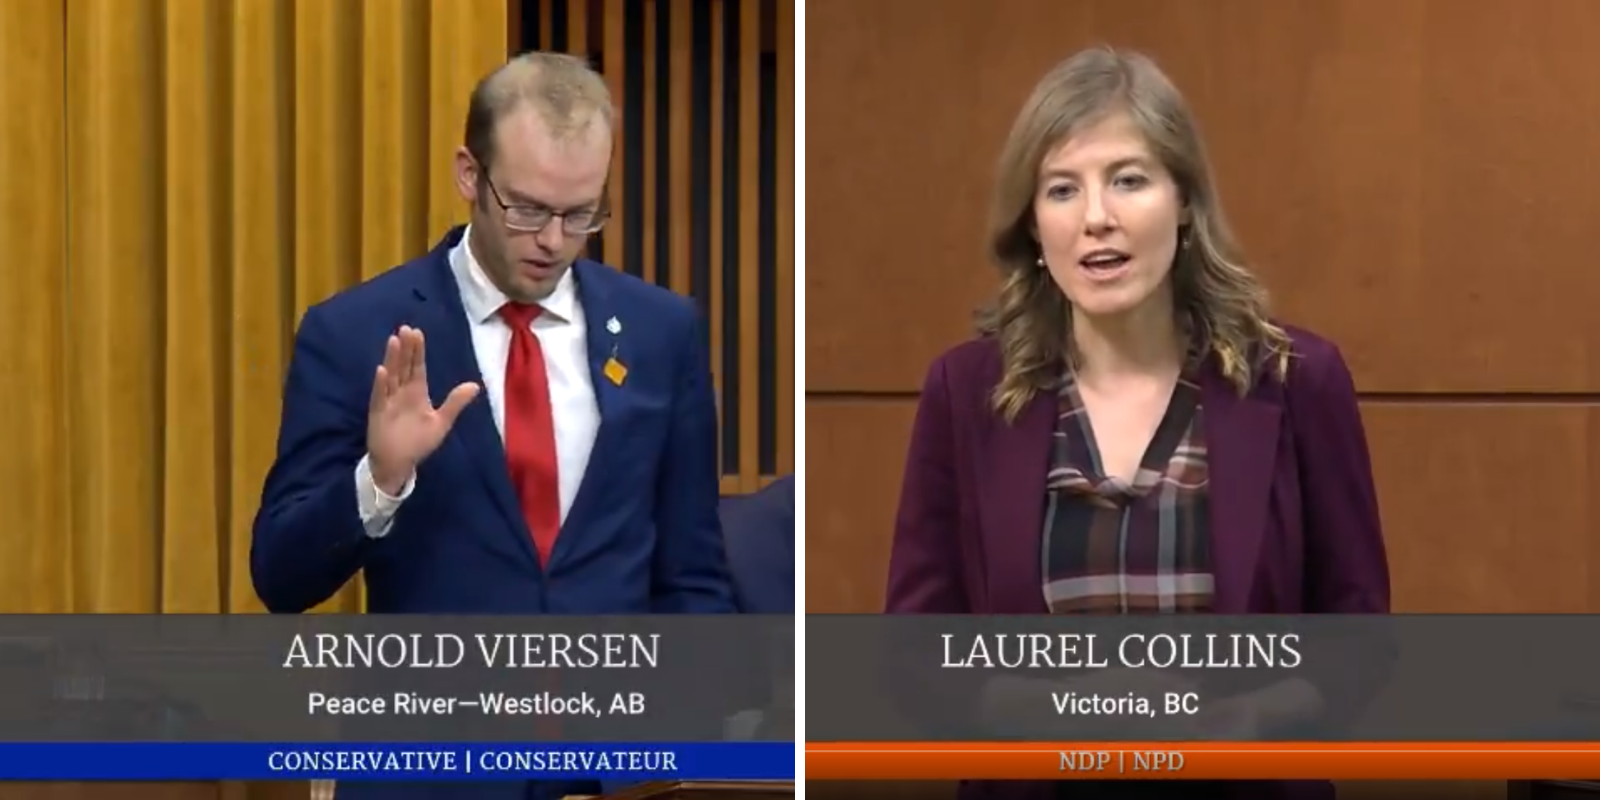 WATCH: Conservative MP asks NDP MP if she has ever considered sex work